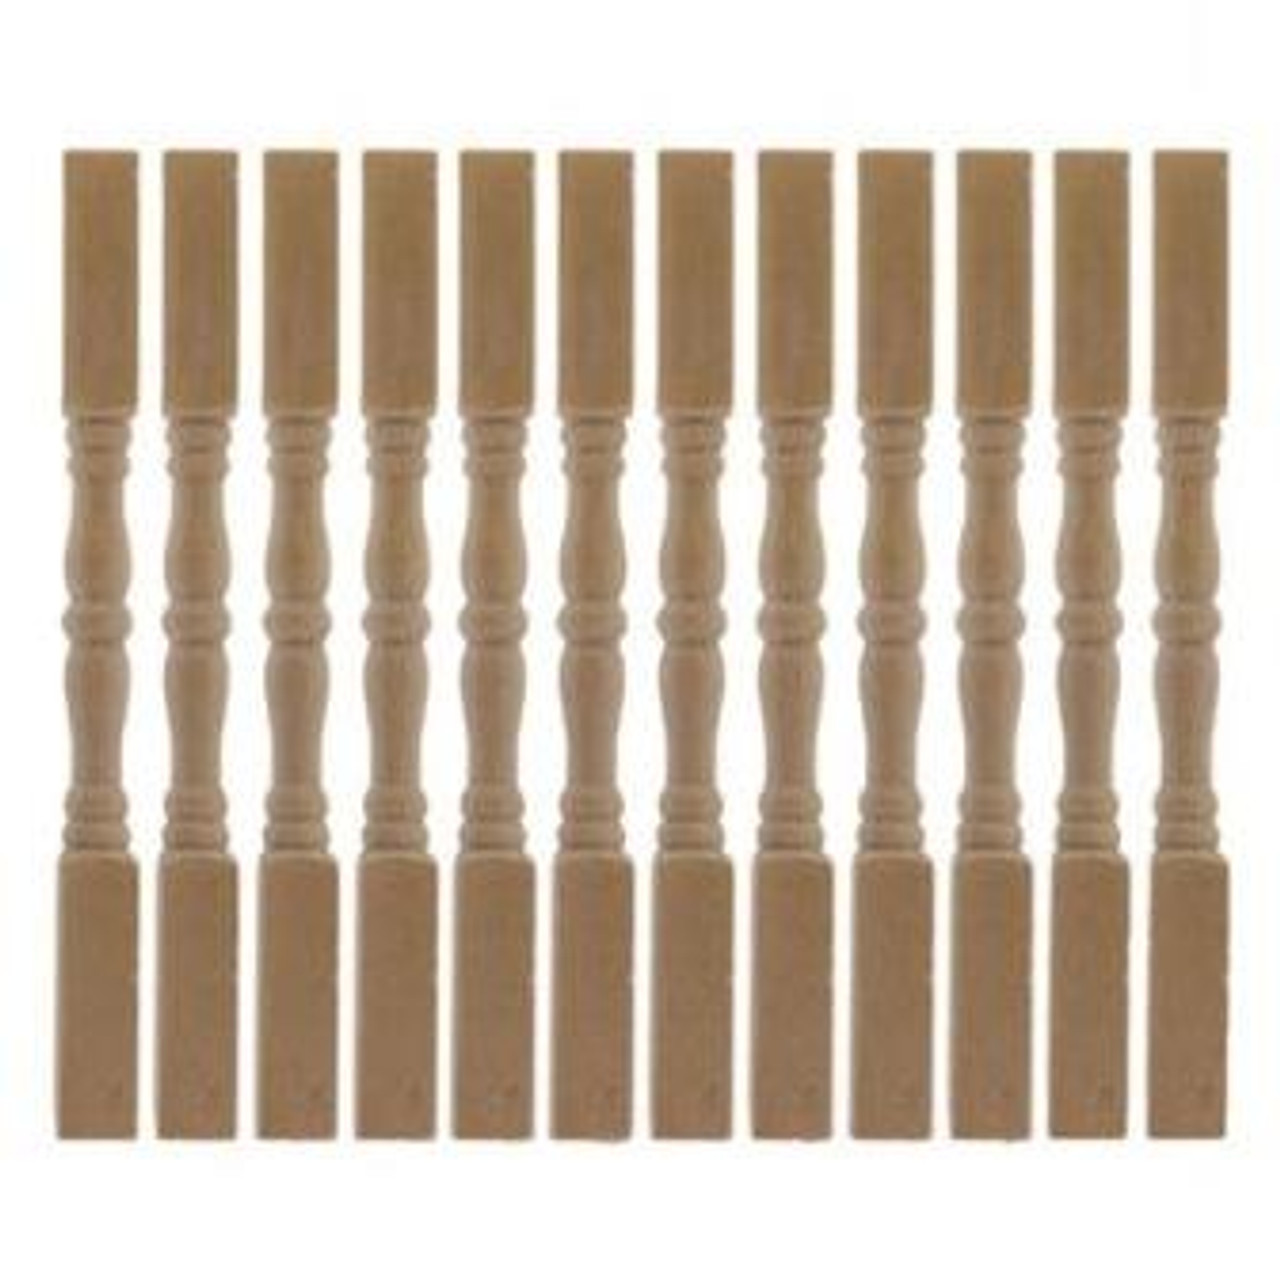 One-inch (1:12) Scale Dollhouse Miniature Balusters, 12/package (CLA70209)